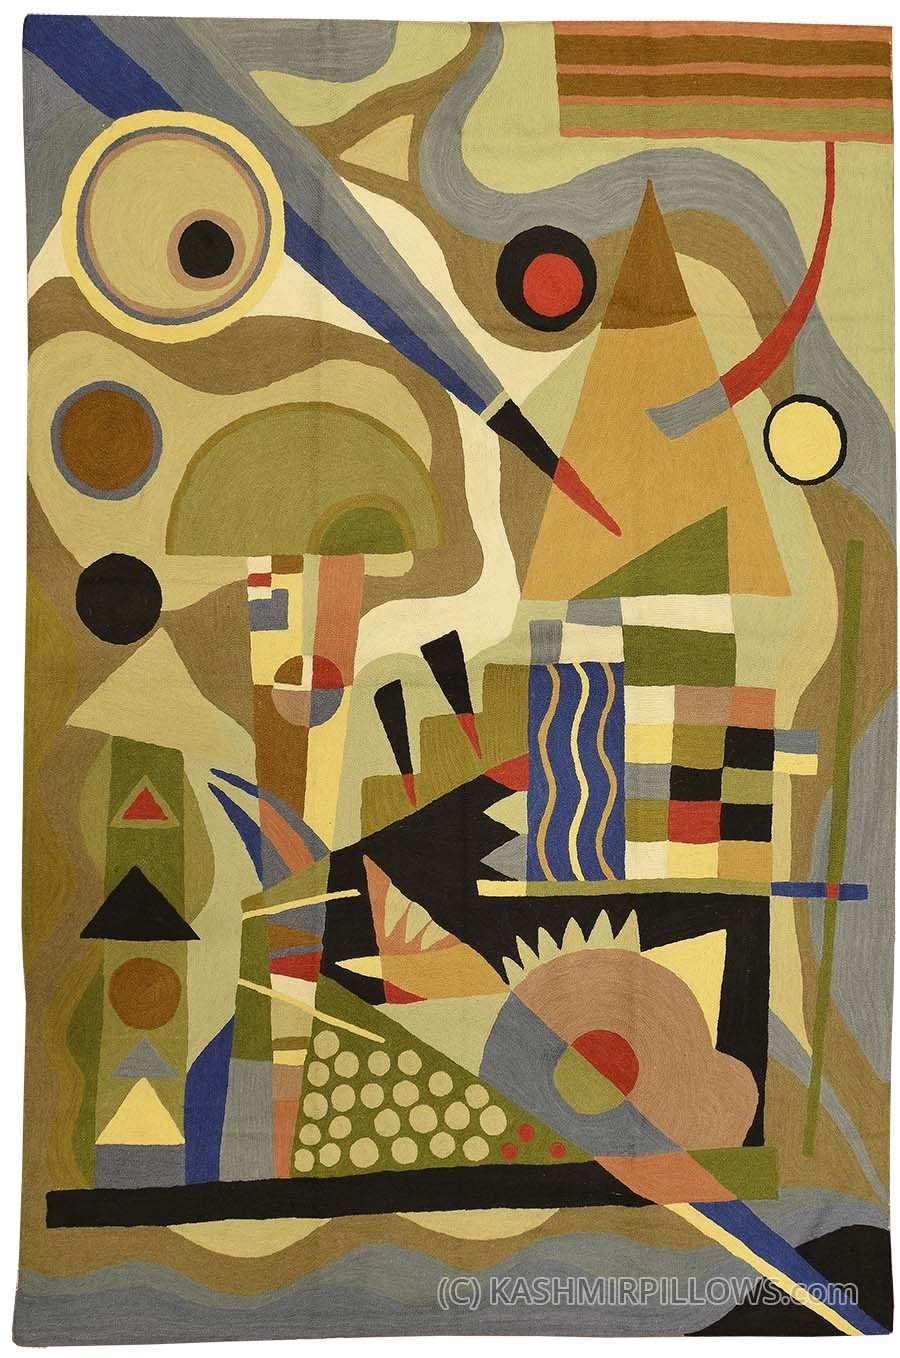 Kandinsky Abstract Composition Wool Rug / Wall Tapestry Hand Intended For Latest Abstract Art Wall Hangings (Gallery 2 of 20)